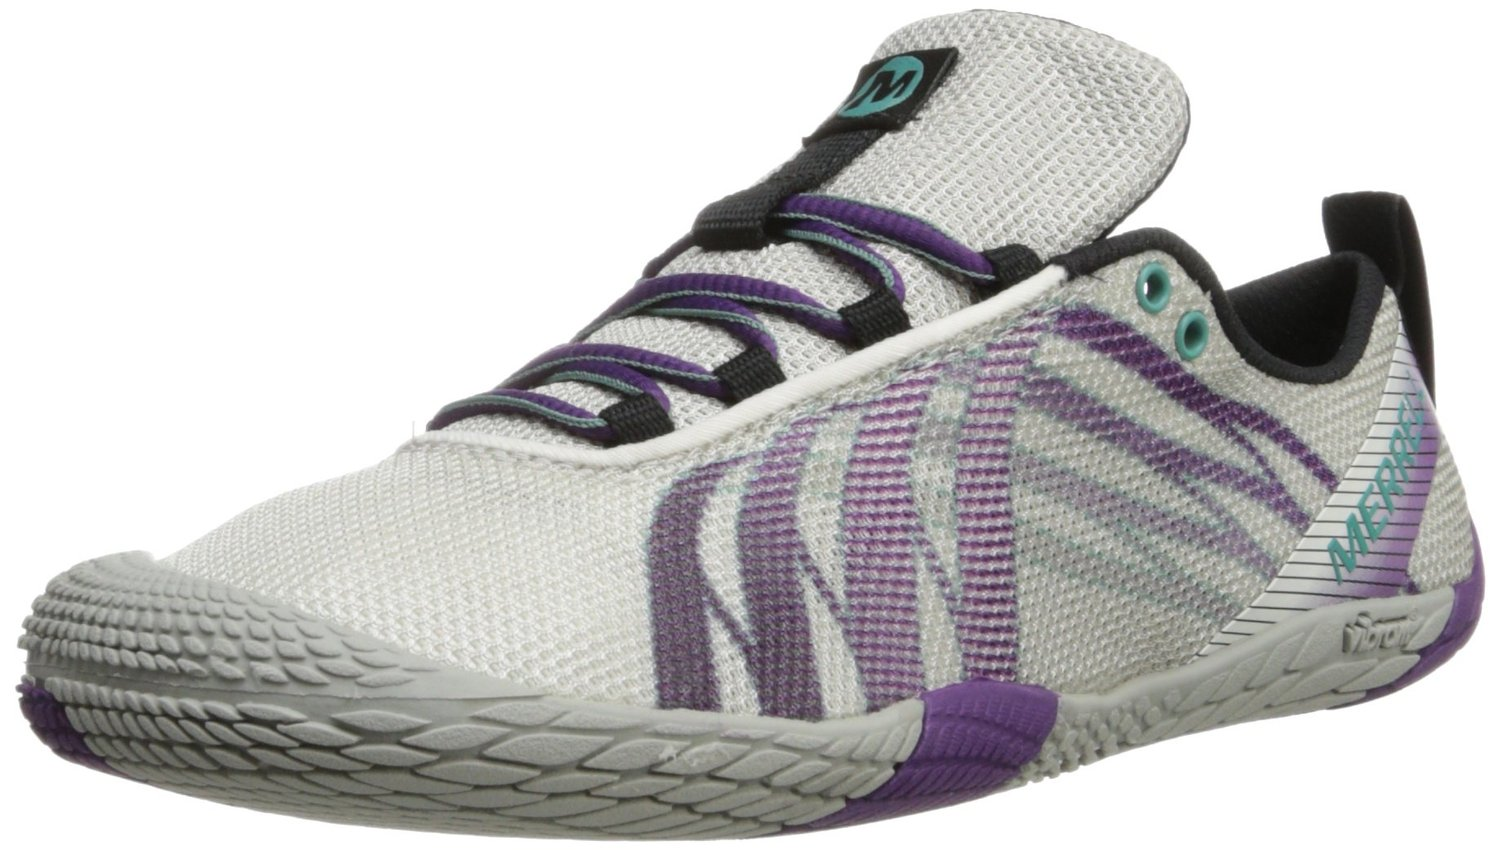 b911638455 Merrell Vapor Glove Trail Running Shoe in White Purple Color